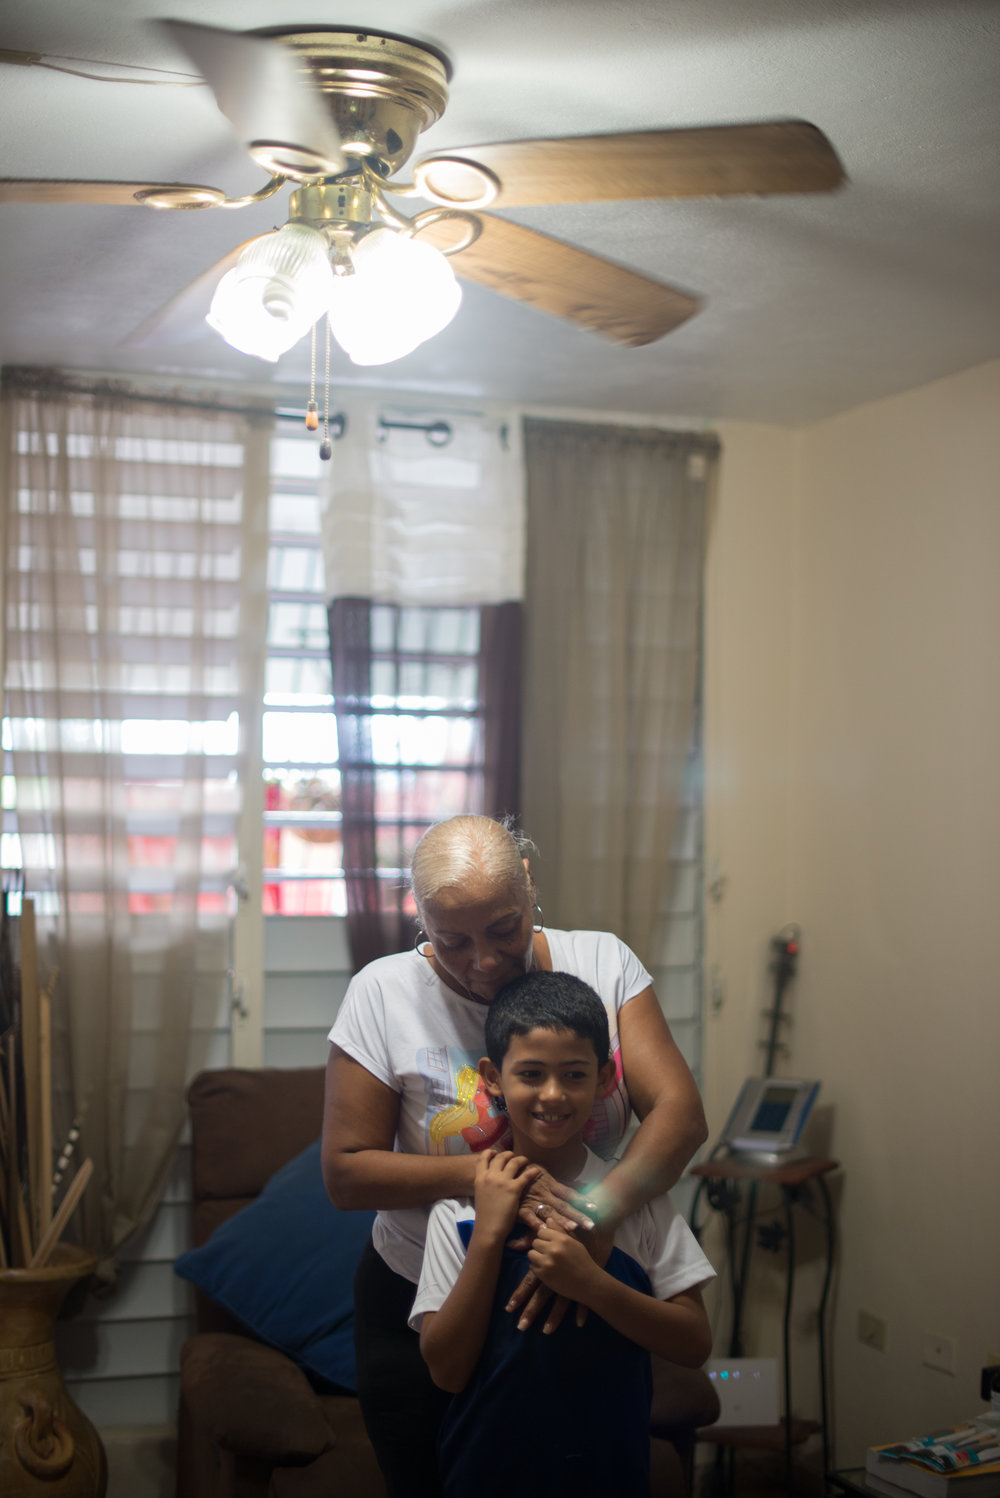 6/9/18 – Bayamón, Puerto Rico – Jayson Grau is a student in the second grade at Aurelio Perez Martinez, one of the schools set to close before the Fall. His grandmother Wanda takes the kids to school while their mother works, and lives at an apartment nearby to theirs so that she can help take care of the whole family.The Puerto Rican Department of Education is closing 283 schools, and moving multiple schools into the same building, citing the past year's drastic drop in enrollment as one of the primary reasons to lower the amount of schools, and instead increase the amount of students in each school. Students of special education schools are one of the groups to be most negatively affected by these closings, as the new schools may not offer the resources the students need and have access to at their current schools. (Sofie Hecht Photography)